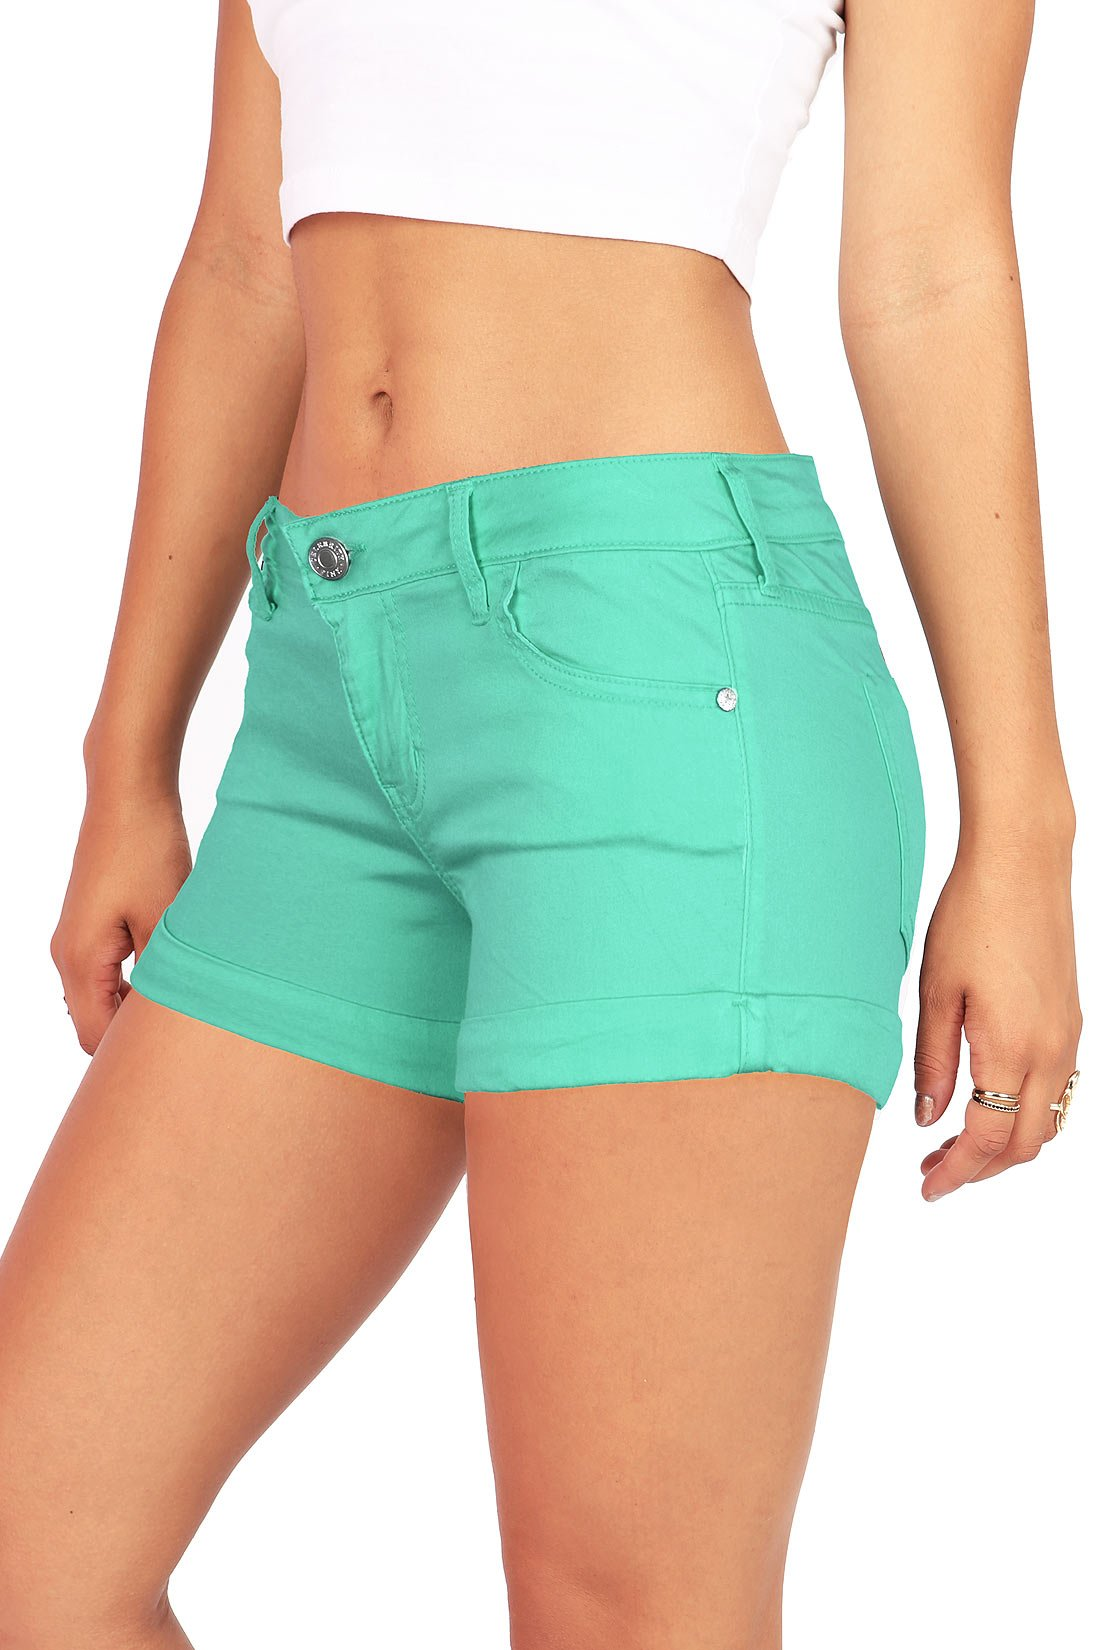 Celebrity Pink Women's Juniors Casual Cuffed Design Shorts (9, Jade) by Celebrity Pink (Image #2)